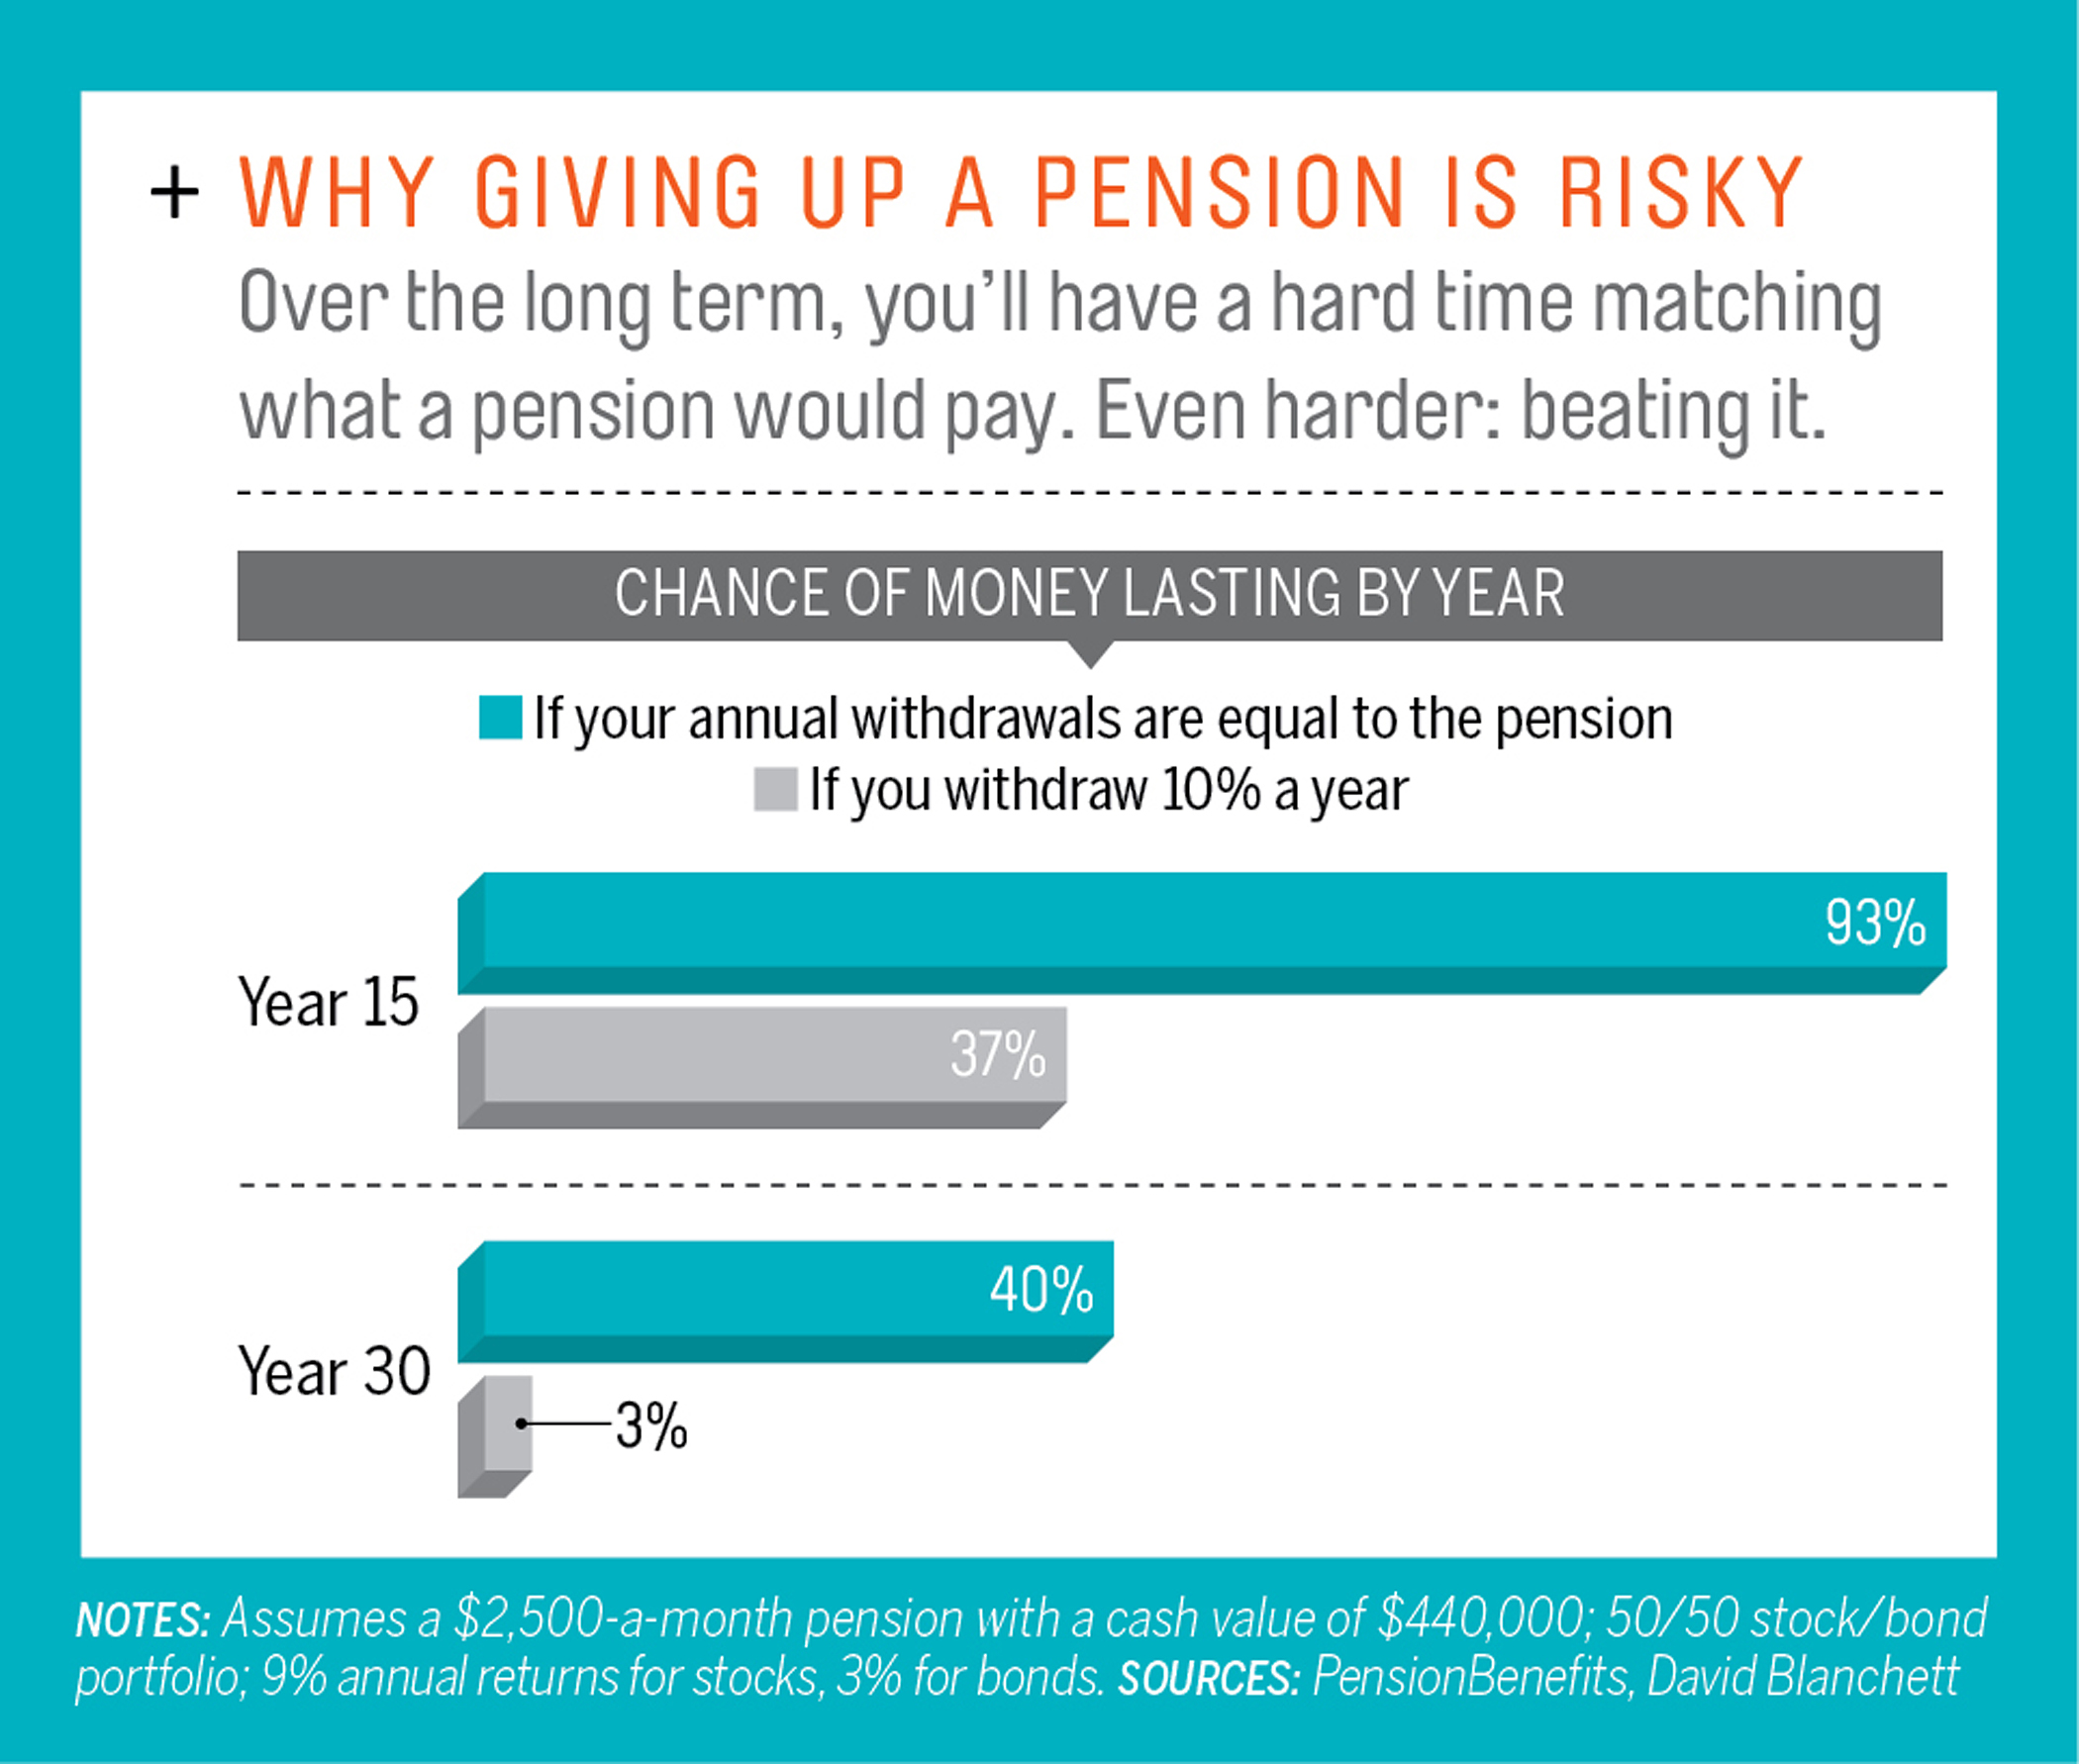 Why Giving up a Pension is Risky